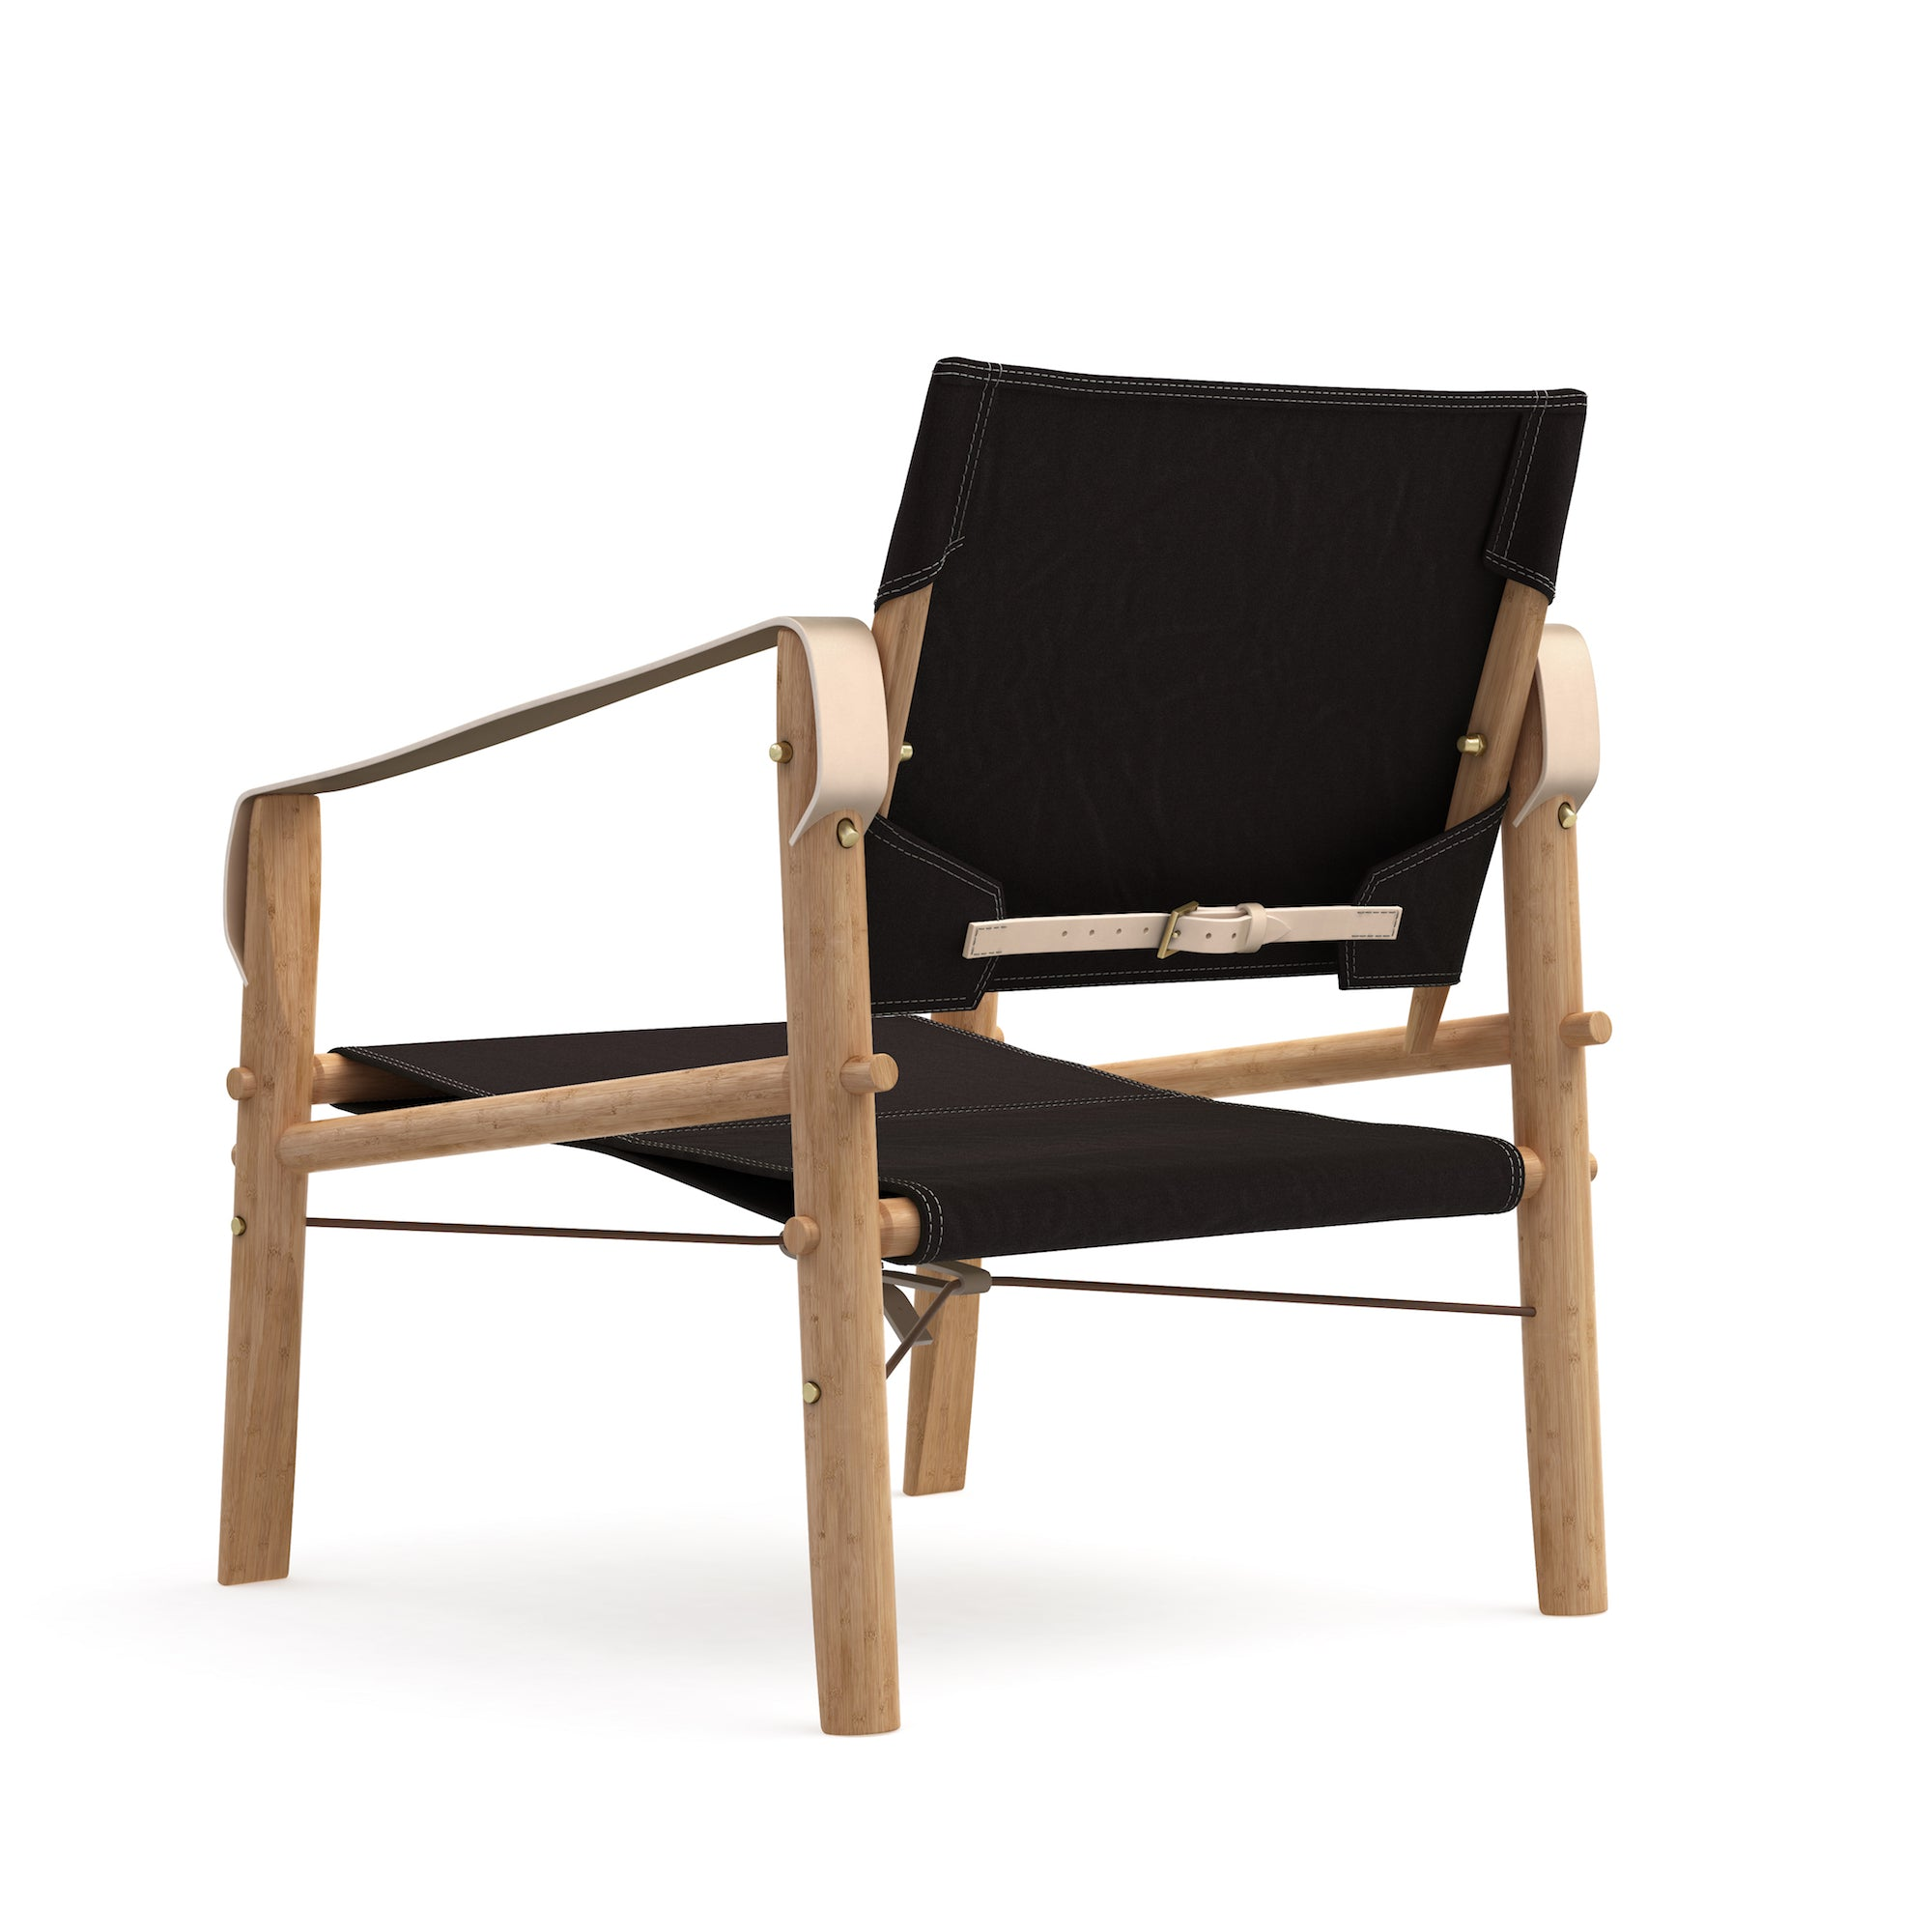 Nomad Chair, Black linen canvas fra We Do Wood